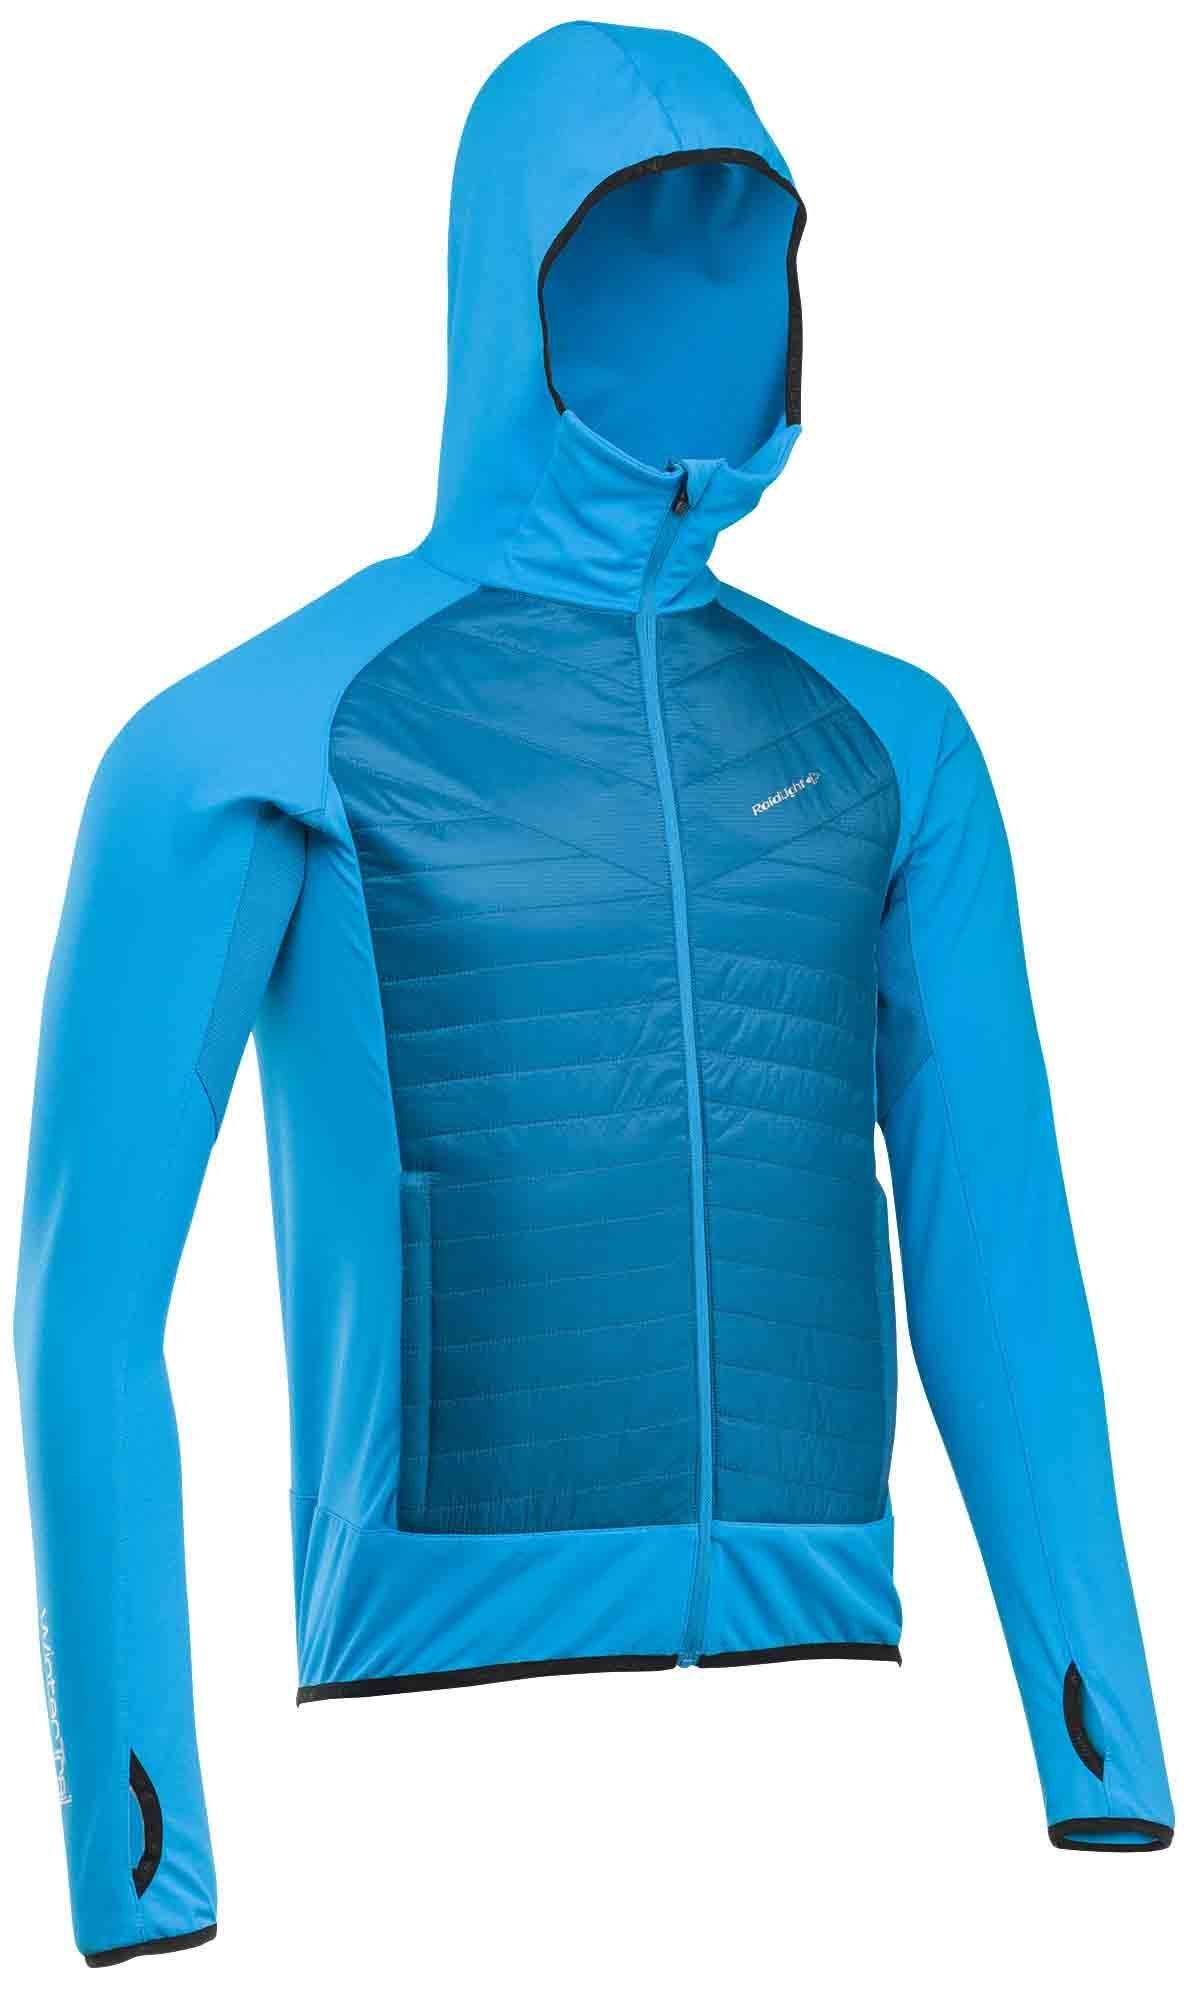 GIACCA RAIDLIGHT WINTERTRAIL HYBRID JACKET GLHMJ10 BLUE.jpg